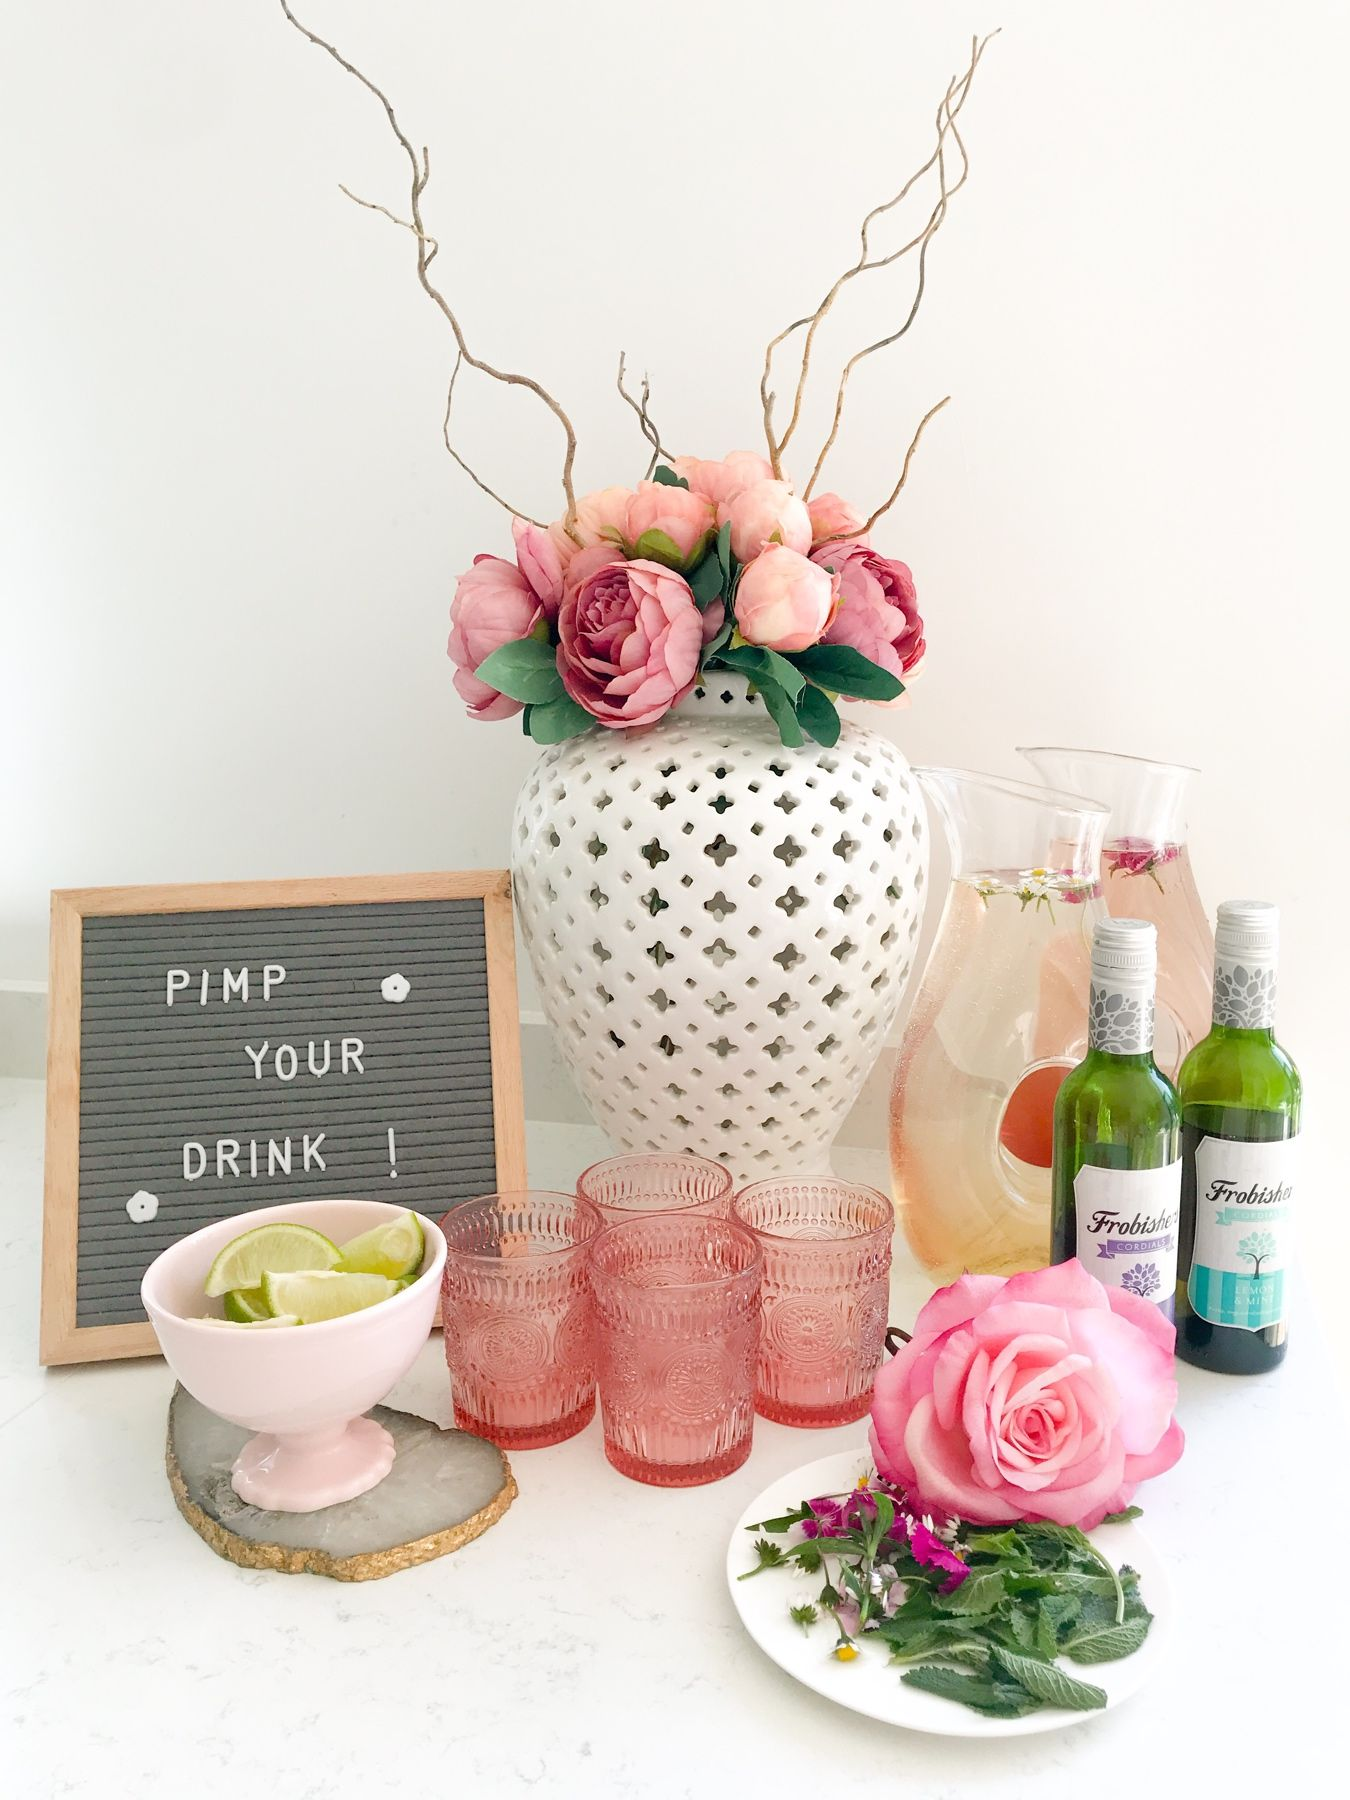 10 TOP TIPS FOR SUMMER ENTERTAINING